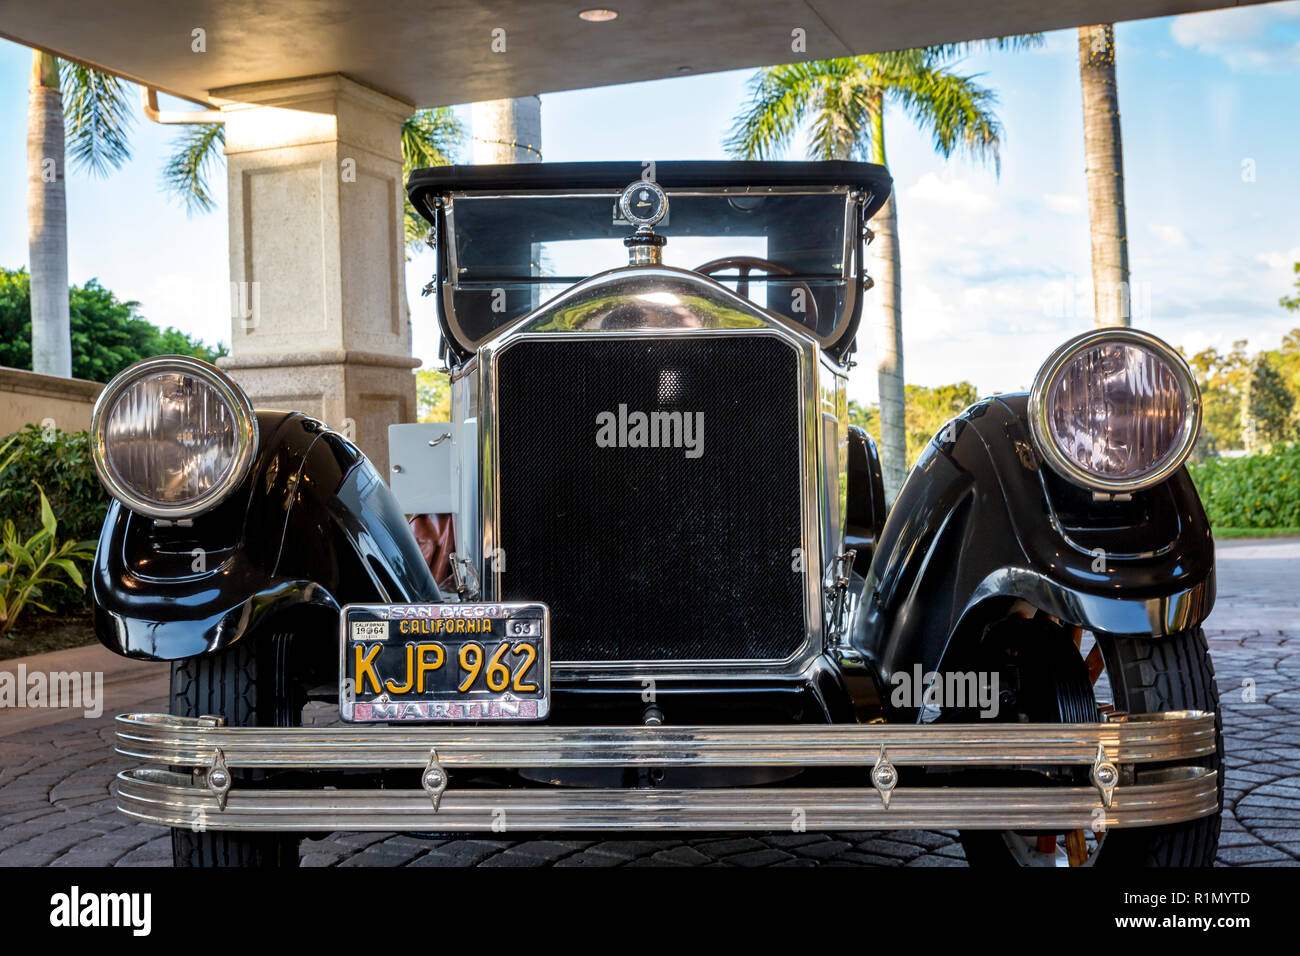 1926 Ford Model T Roadster at Quail Creek Country Club, Naples, Florida, USA - Stock Image